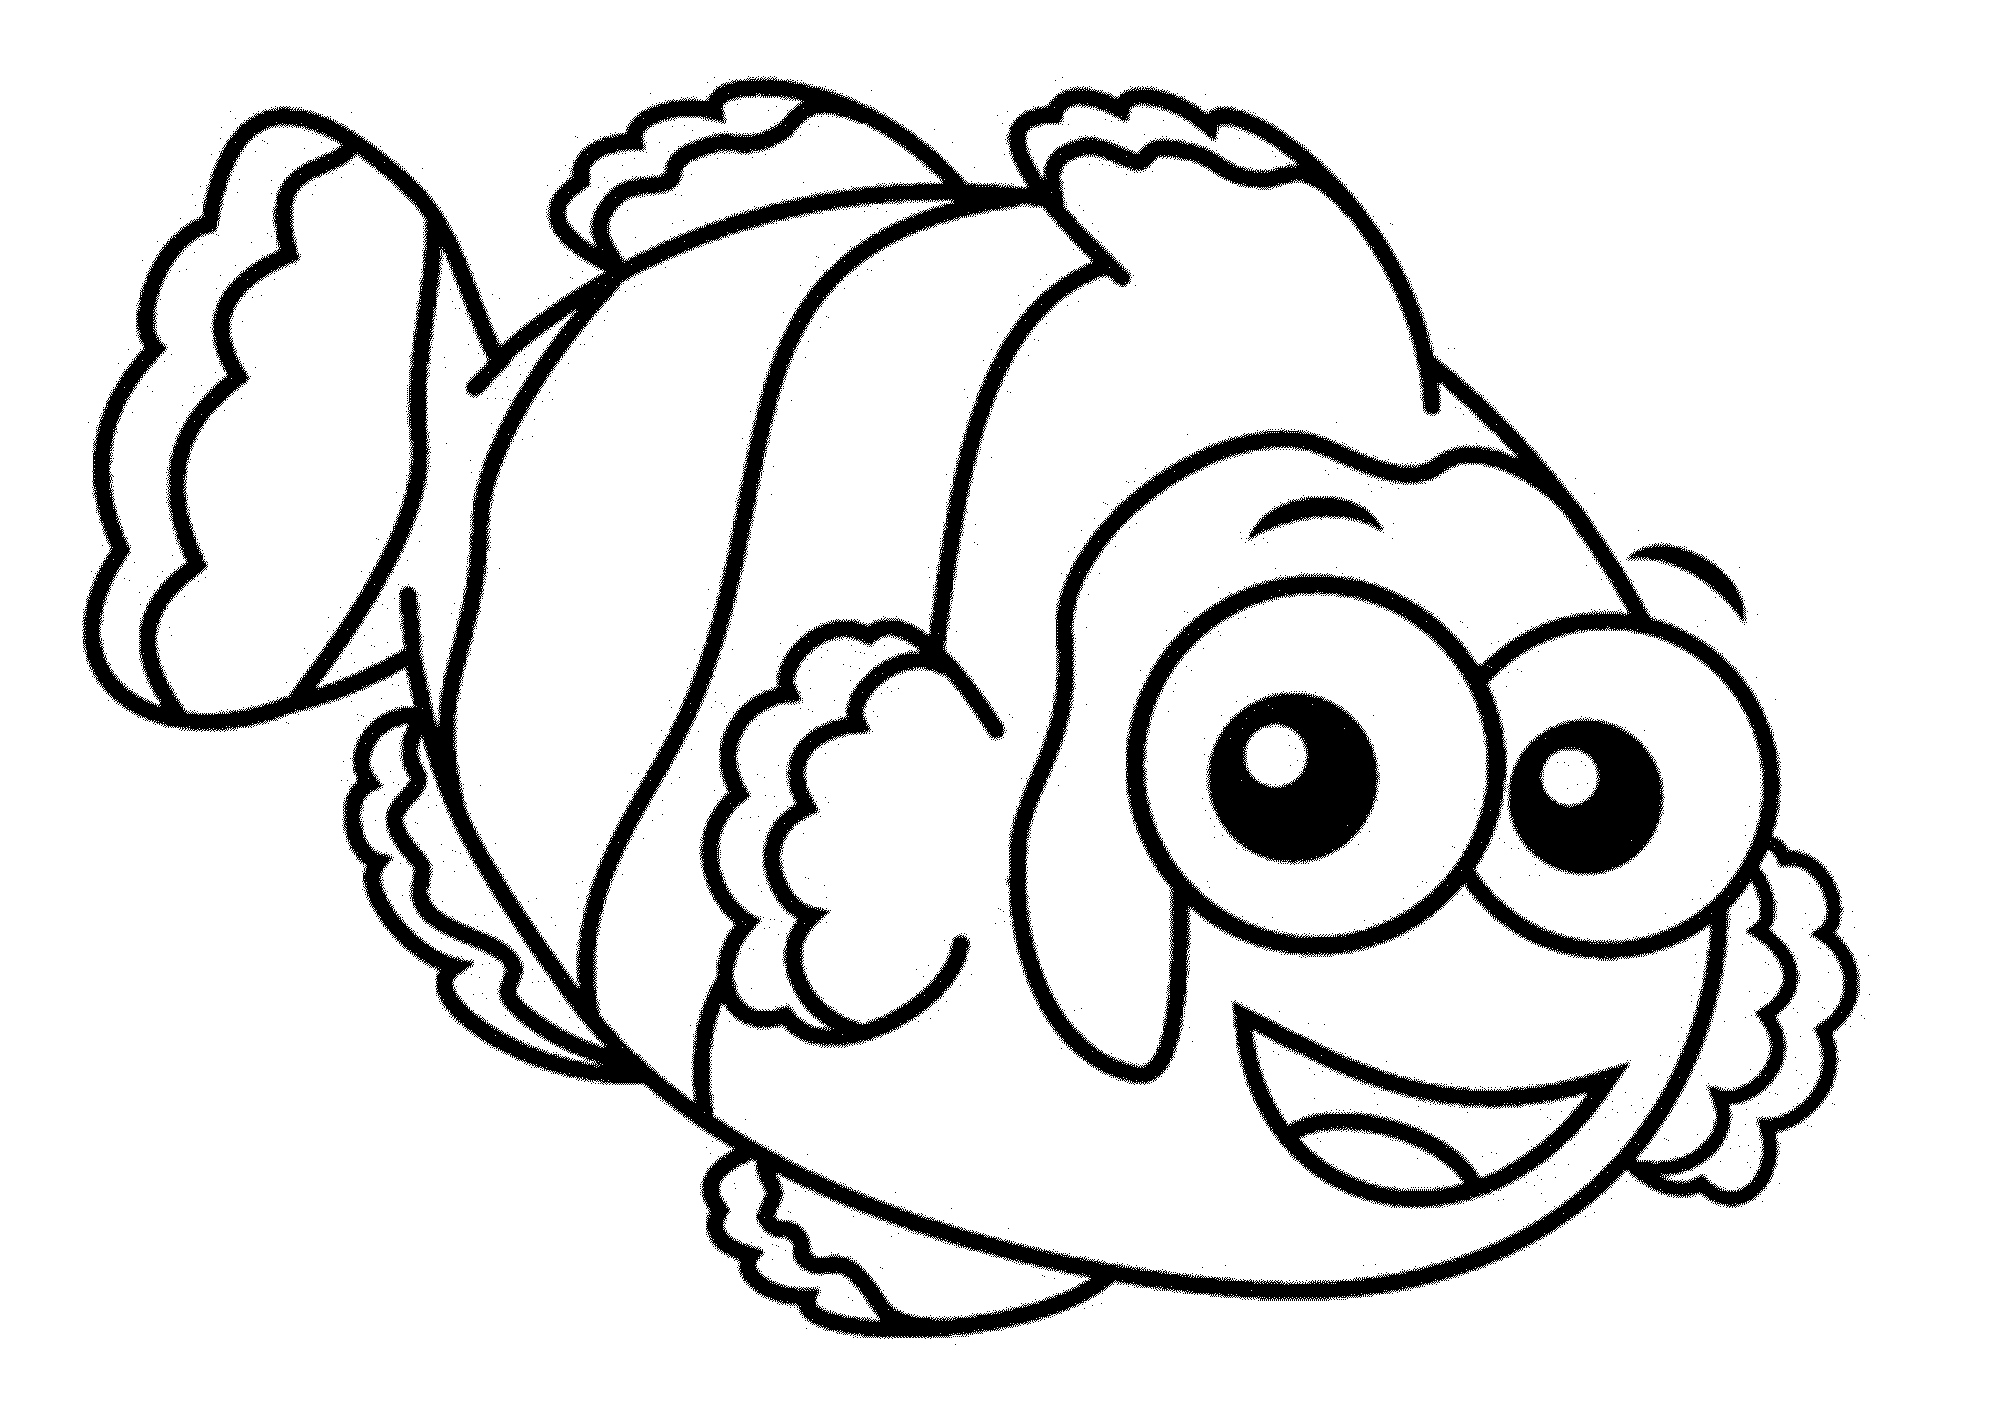 free coloring pages fish - photo#13